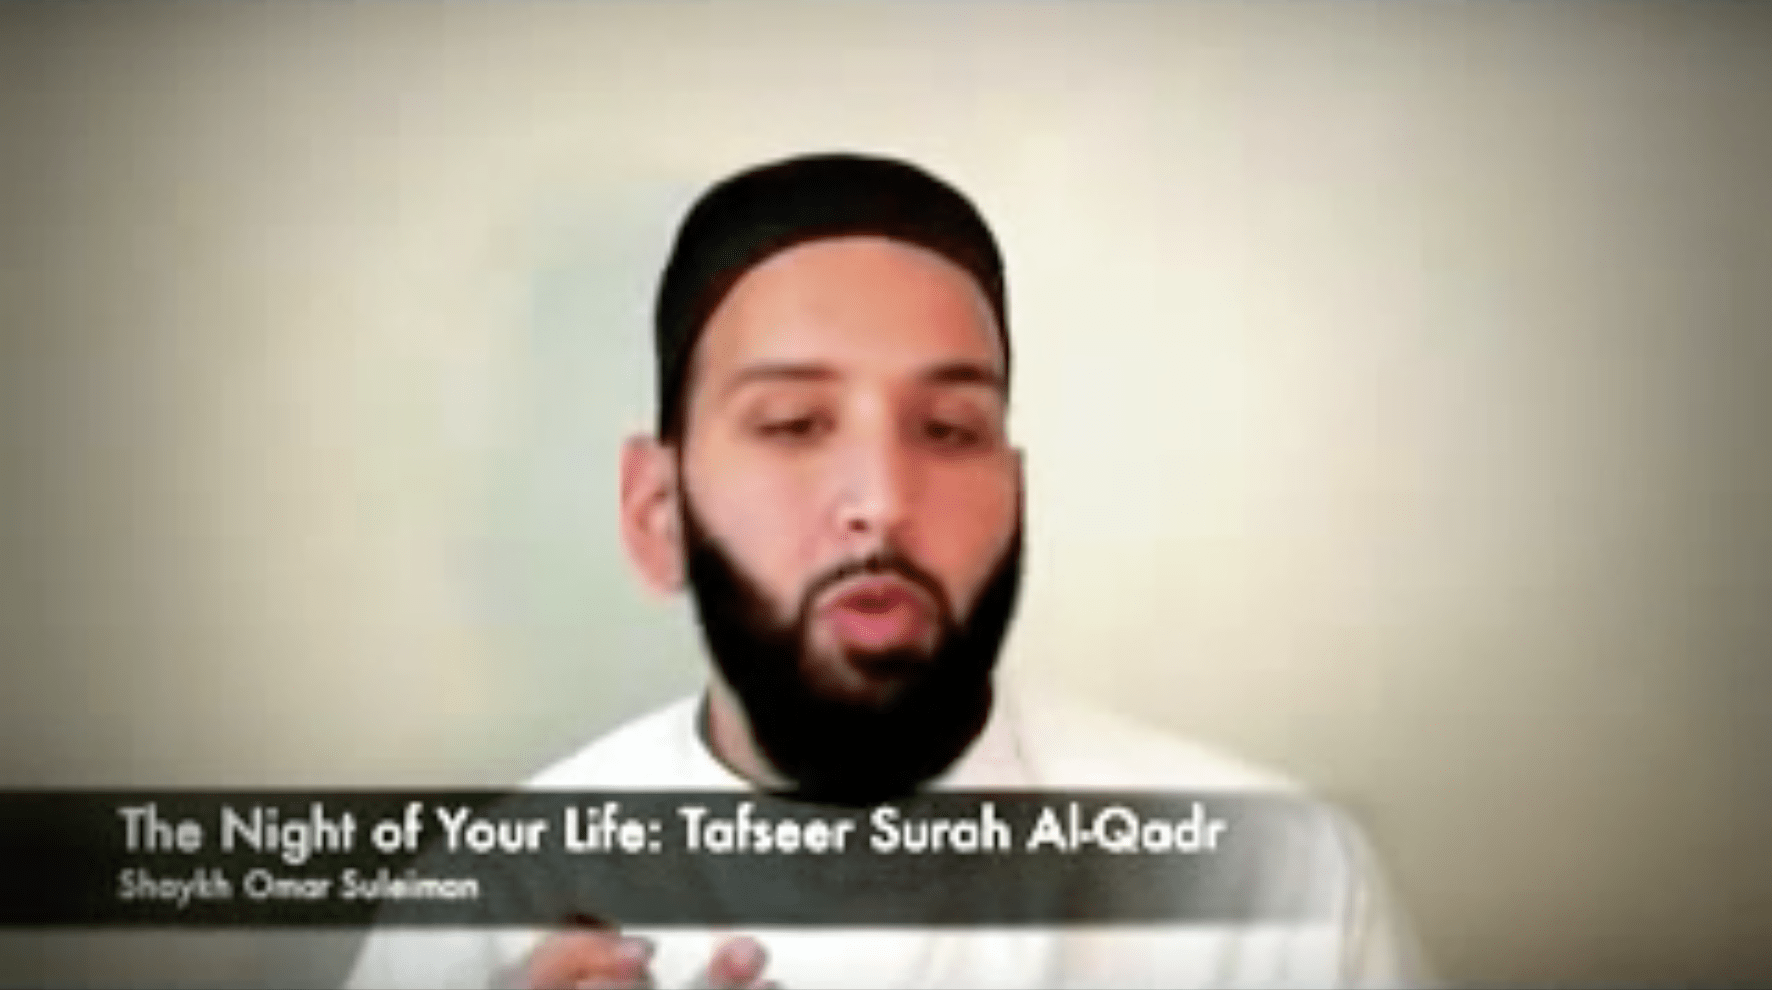 Omar Suleiman – The Night of your Life: Tafseer of Surah Al Qadr